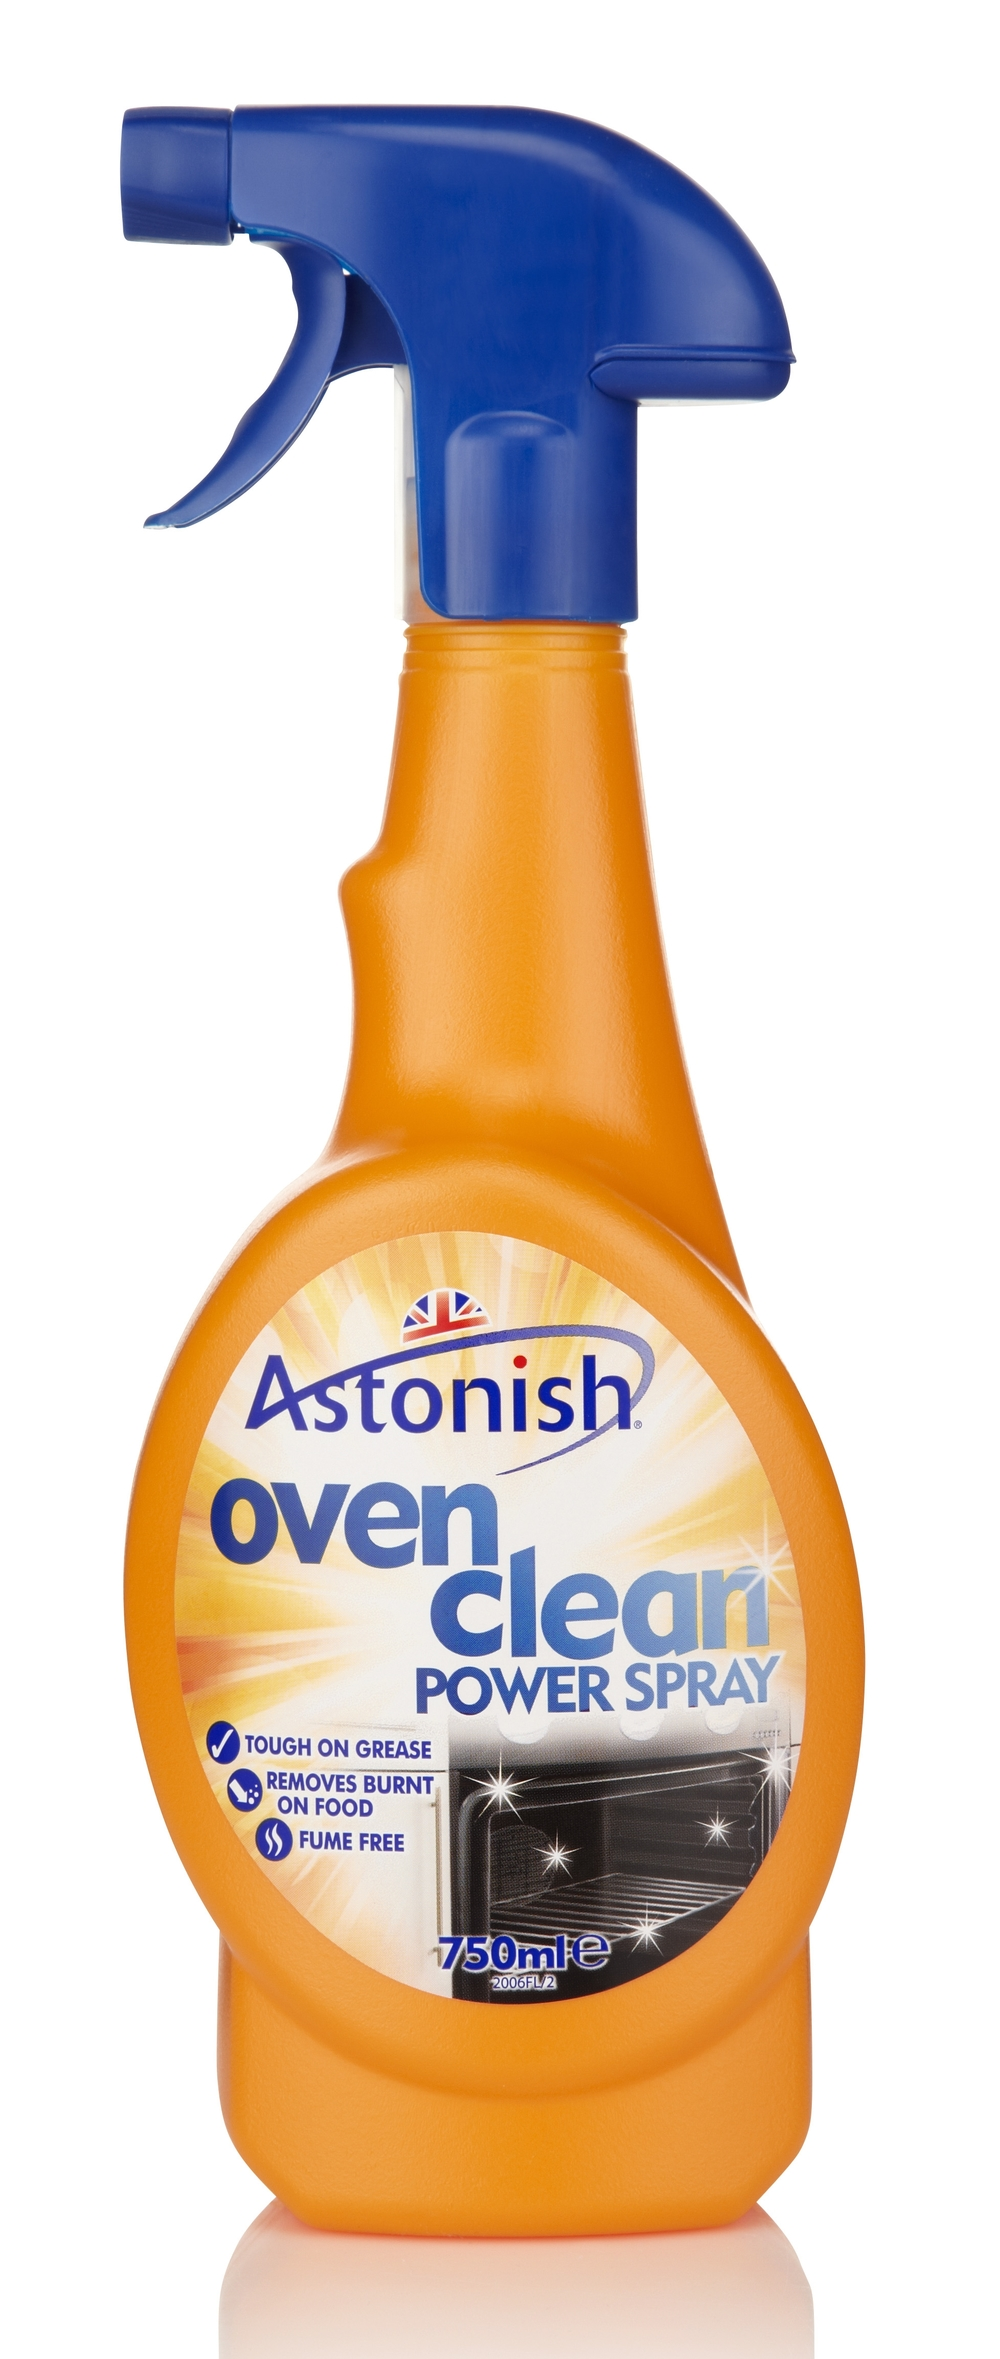 Astonish Oven Cleaner Power Spray 750ml.jpg